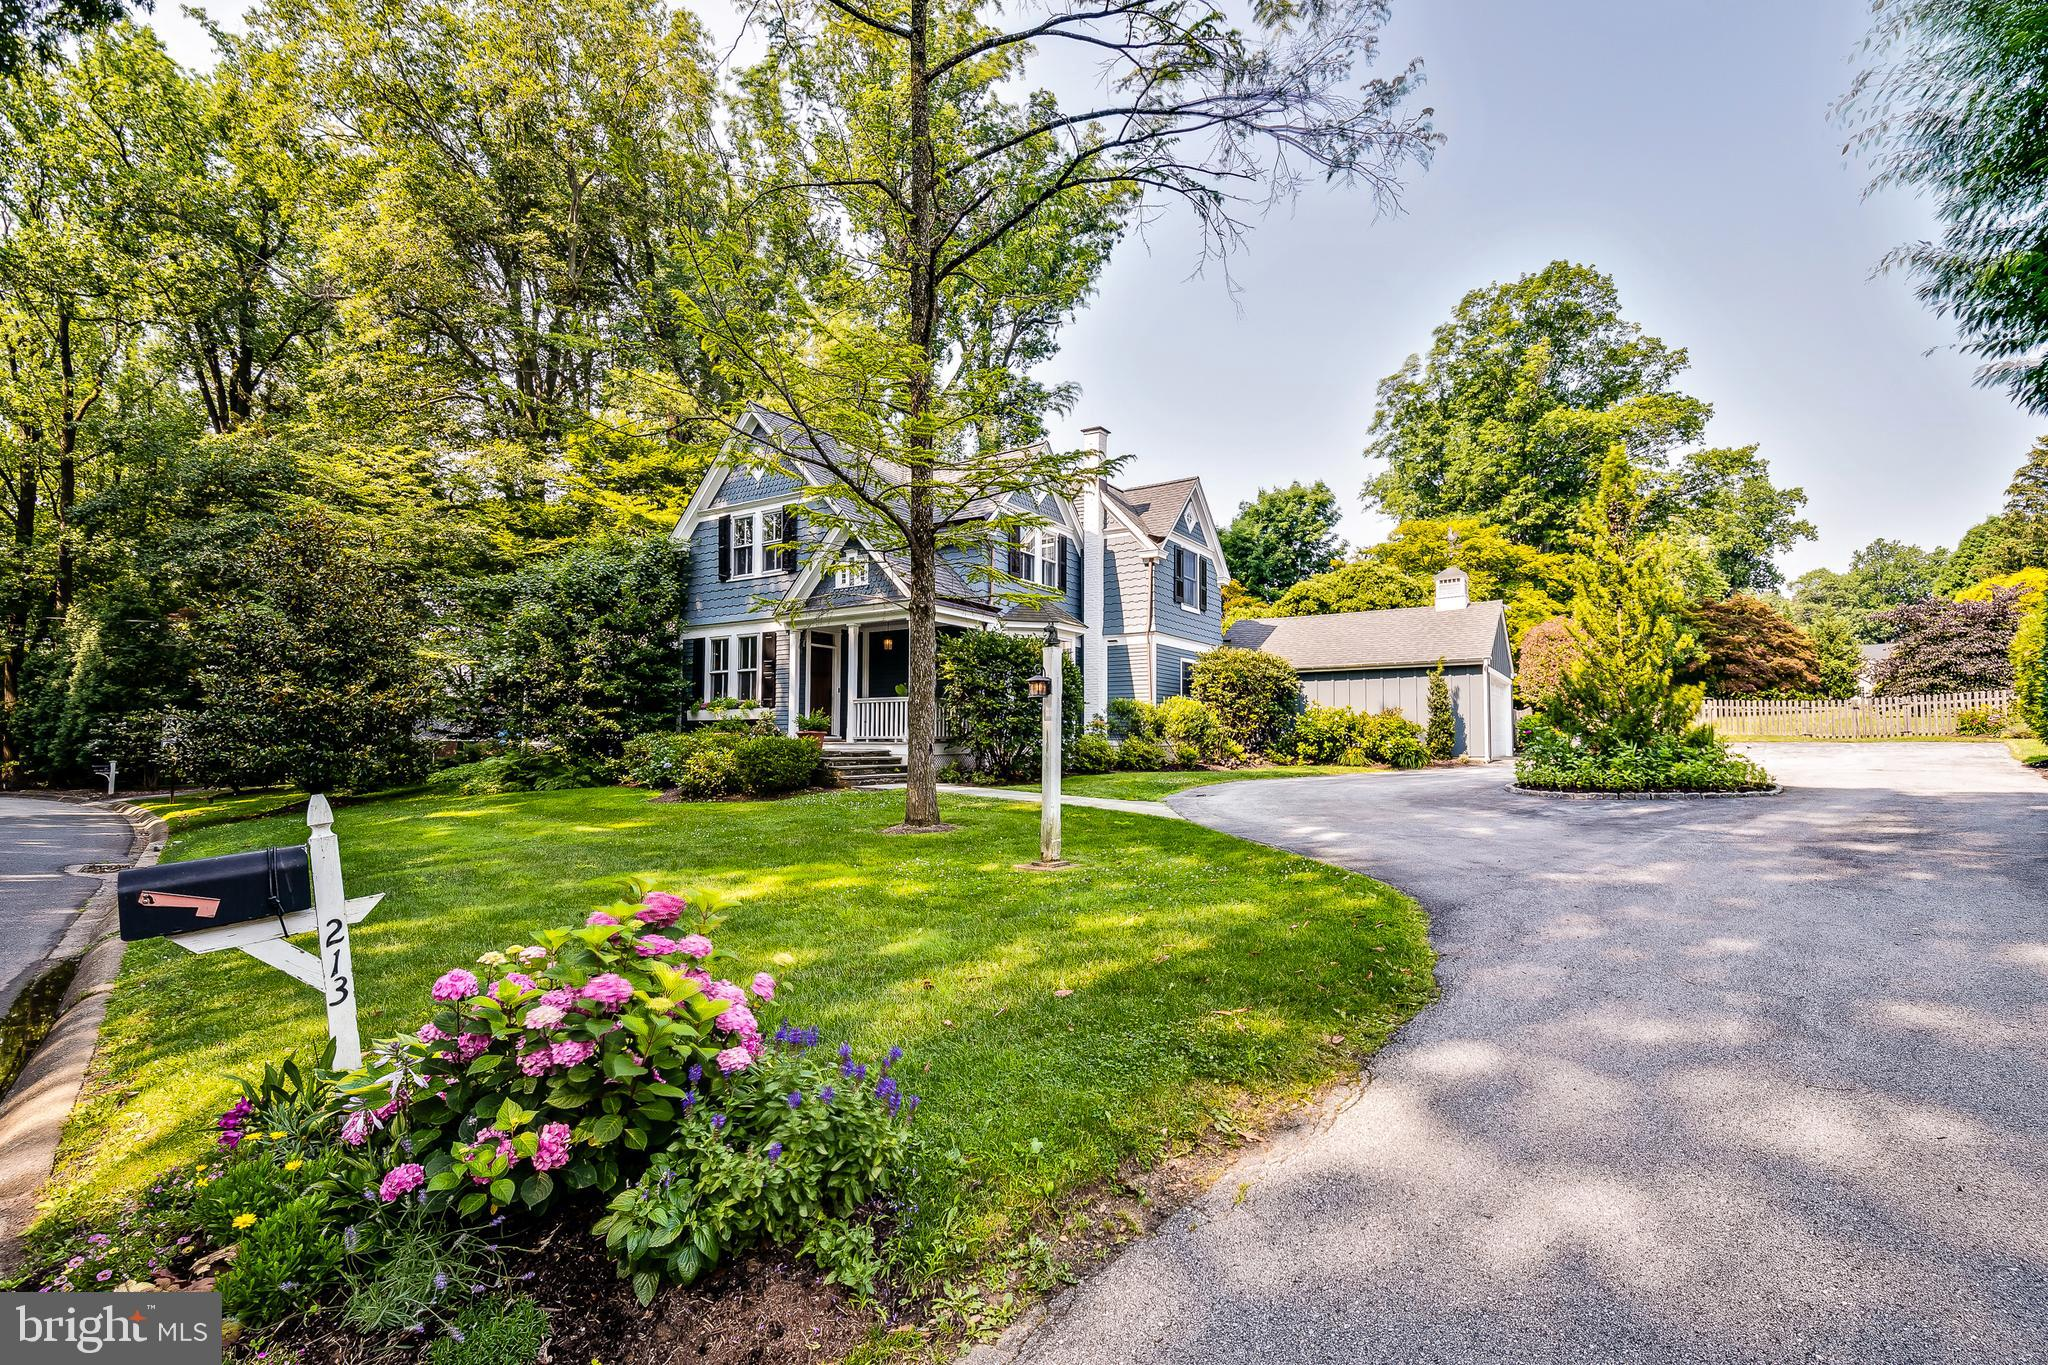 """This stunning Carriage house is the home that everyone has been waiting for. Just over 100 years young, this treasured residence has old world character and has been thoughtfully updated with modern luxuries and amenities that today's seasoned buyer is demanding. Originally part of the Berwind Estate, and sitting on one of the most desirable, manicured, ONE ACRE lots, in the coveted Northwoods section of Radnor Township. Enter this well loved home from the circular driveway, surrounded with specimen trees and perennials, and through the picturesque front porch. Entering the center Foyer you are greeted by boundless light and the grand and elegantly understated staircase. The dramatic formal Living room is ahead and the vaulted ceiling is an architectural marvel to behold in this room. Enormous windows, sliding glass doors, custom built-ins are all anchored by the strategically aligned gas fireplace that is the heart of this room. A discreetly placed Powder bath is off and out of sight. Back through the Foyer is the open and airy Dining room that seamlessly connects to the true heart of this home, the Custom Plato Kitchen. Showcasing every luxury a chef could want including a Sub zero fridge, 4 burner professional Thermador range, professional exhaust, a custom built Grothouse walnut island top and natural stone countertops. The kitchen flows into the completely open concept Family room, with another gas fireplace, walls of windows and sliding doors, another Powder bath and first floor Laundry.  An exquisite """"FLEX"""" room is utilized as a Playroom, but can easily be a Breakfast room or anything else your imagination can dream of in this truly creative space. Access the Flagstone patio with a pergola that is an entertainer's dream, with stunning views of the securely fenced, expansive lawn. The second floor unfolds 3 spacious bedrooms all with generous closet space, a classically appointed hall Bath room and the show stopping Principal bedroom suite. Yes another room, t"""